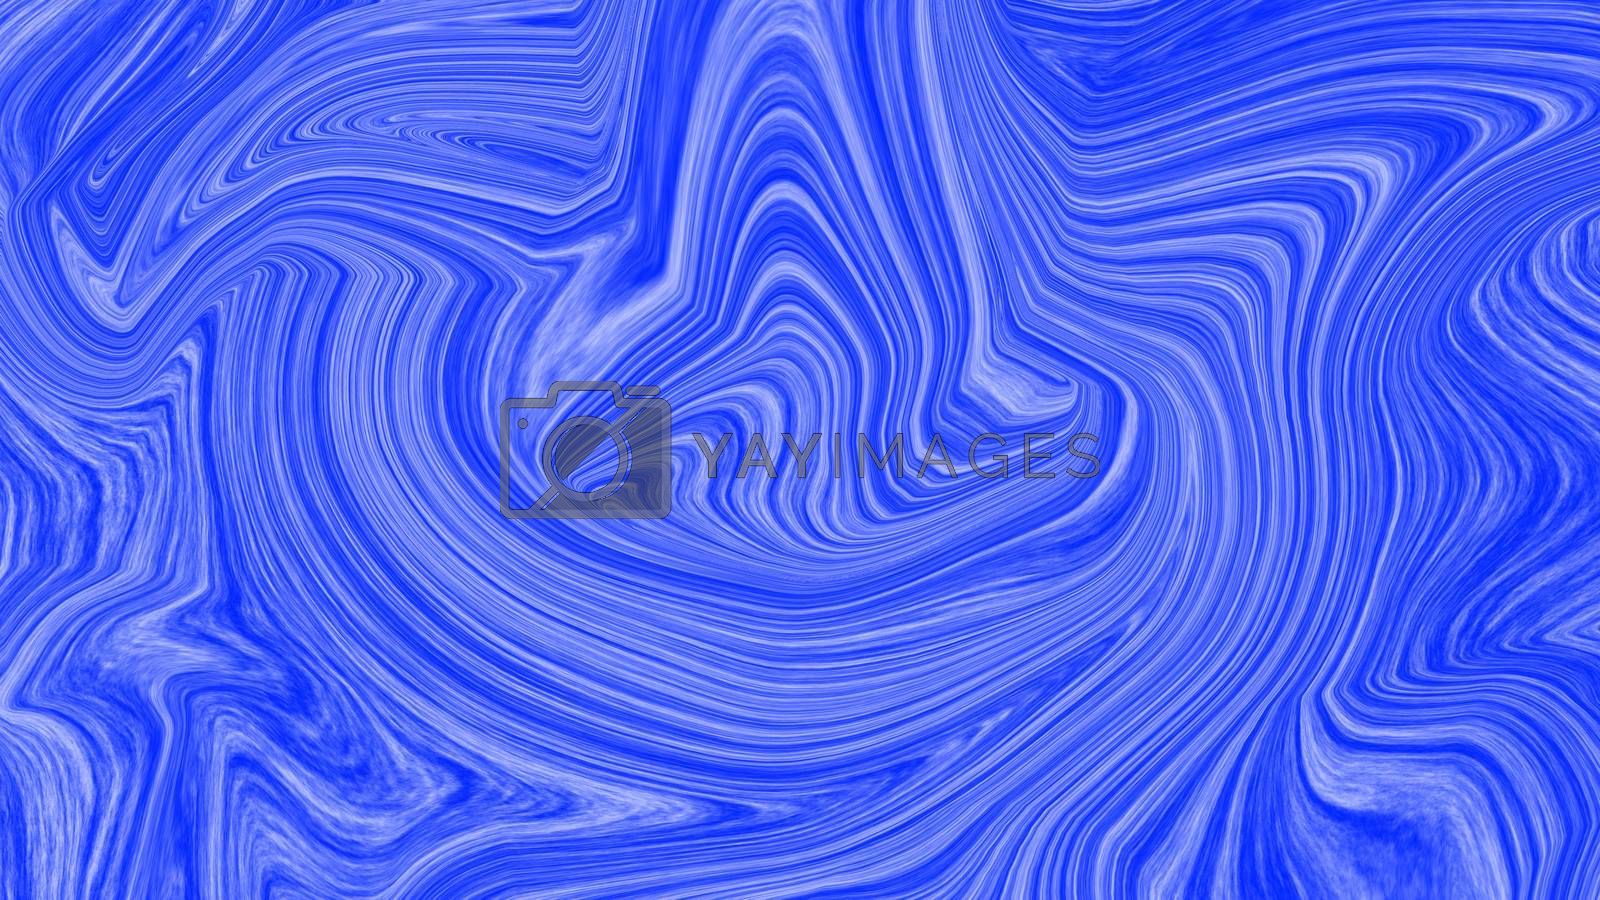 Royalty free image of Colorful fluid imitating texture for marbles and interiors. by Photochowk